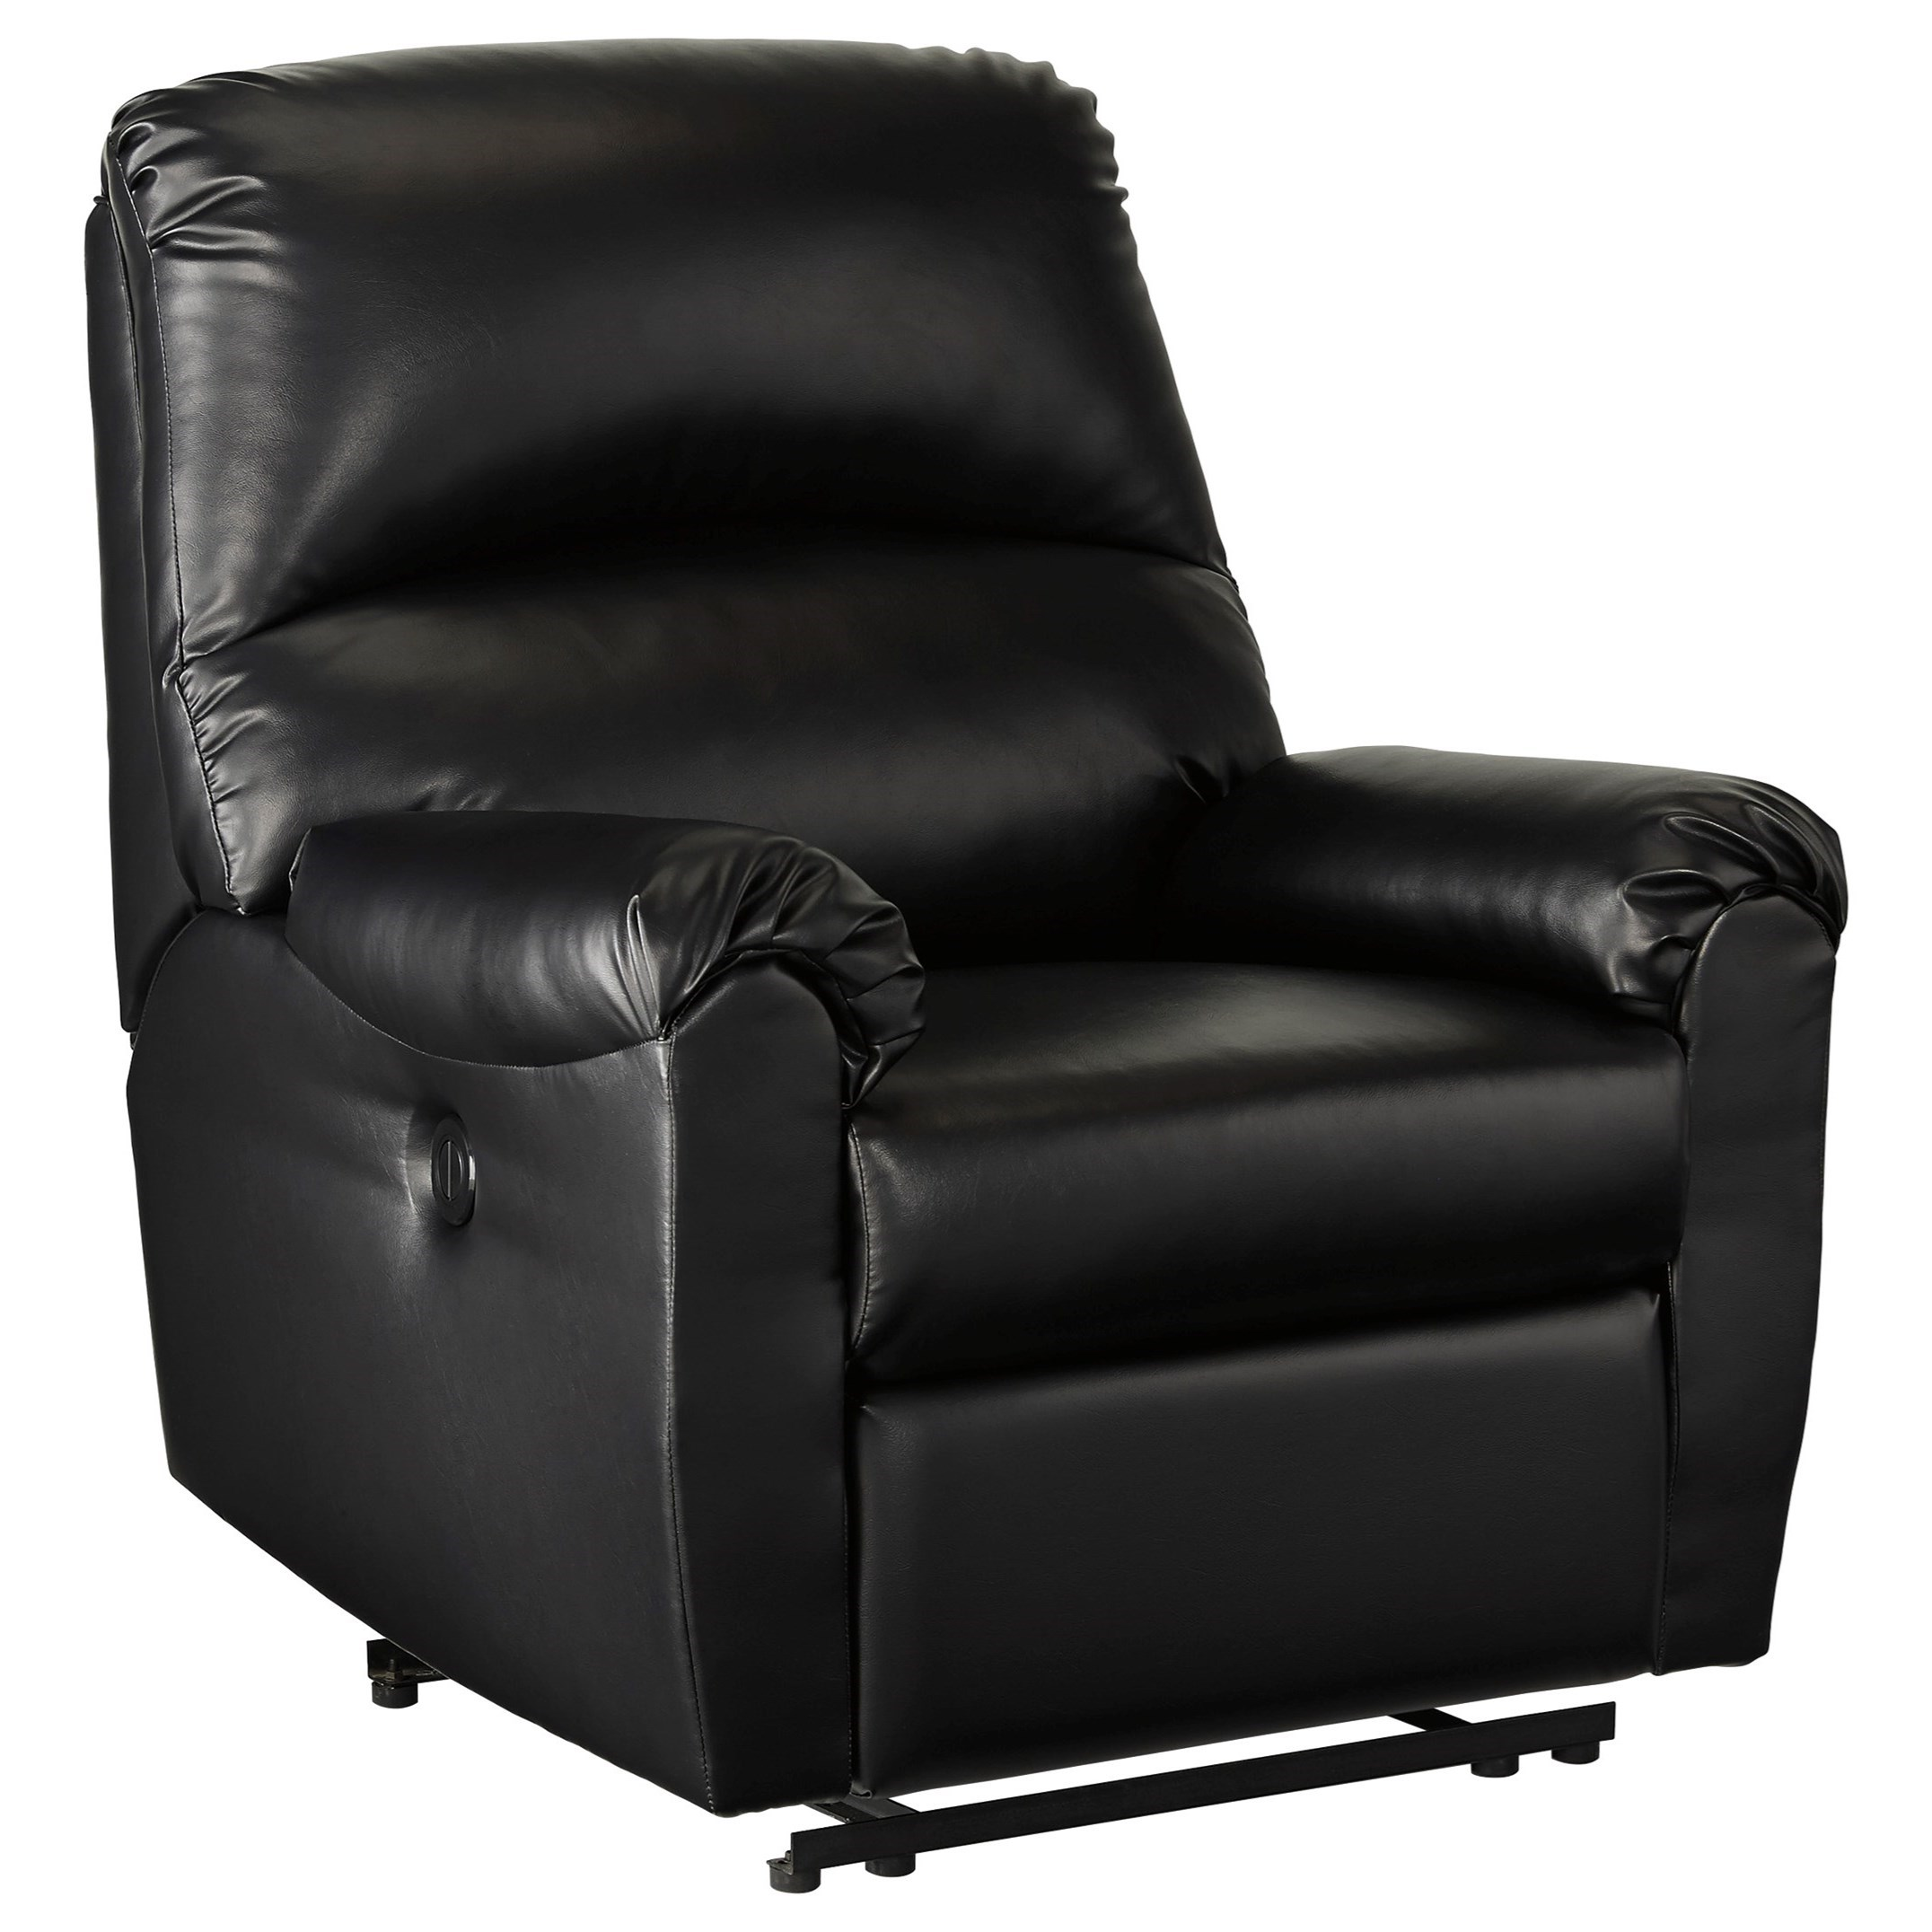 Signature Design by Ashley Crozier Power Recliner - Item Number: 7630506